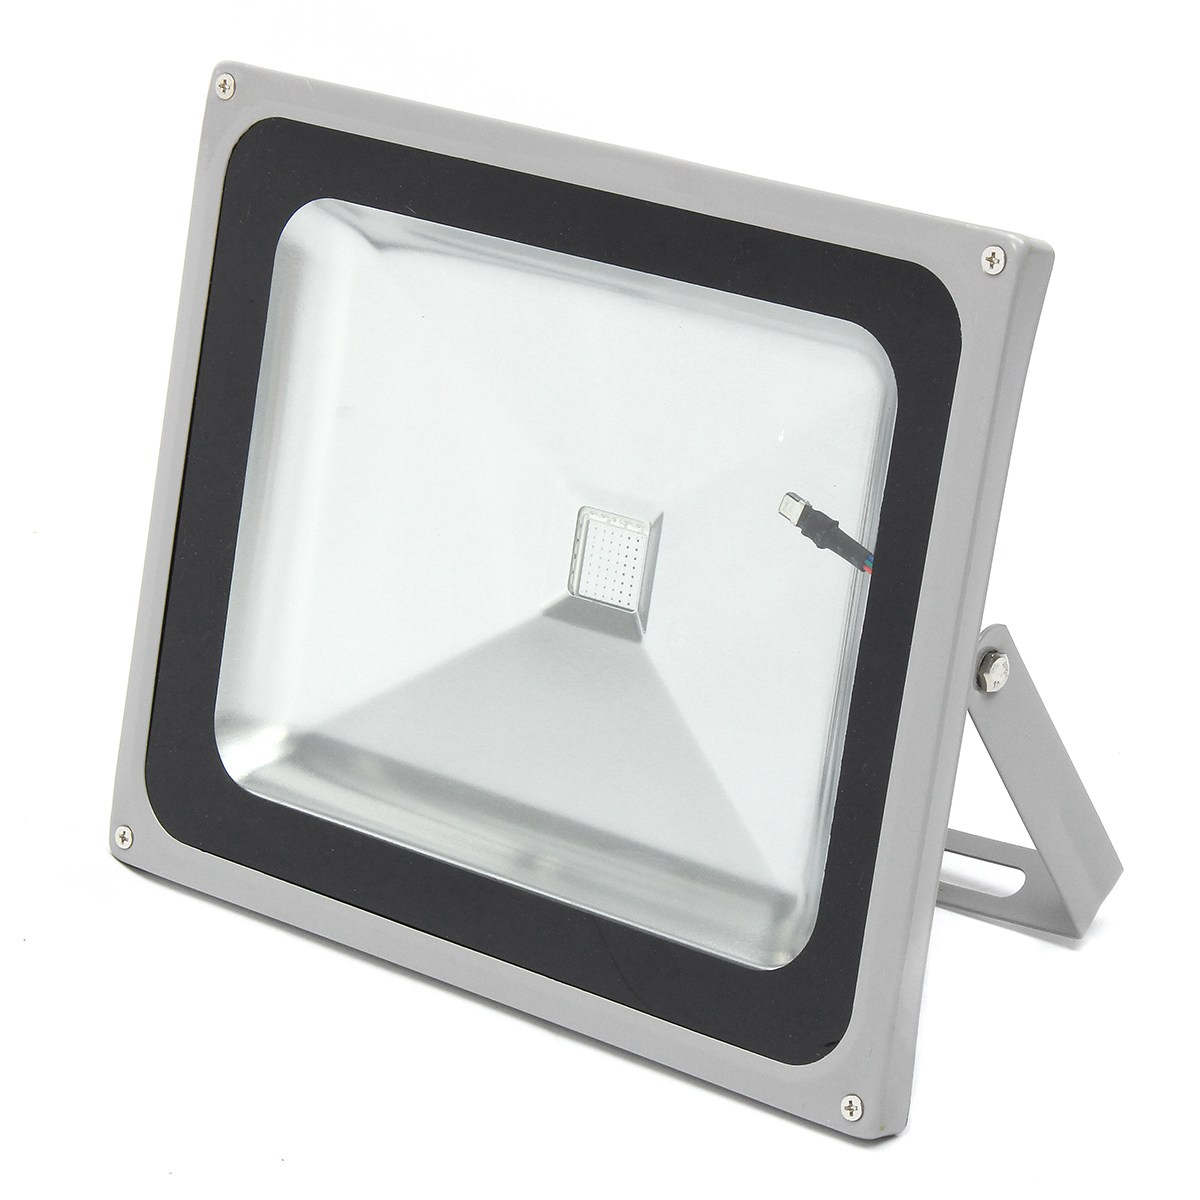 NEW Safurance 50W PIR LED RBG Focos Reflectores Colores 16 Colorful Spotlights Floodlights Building Automation<br>